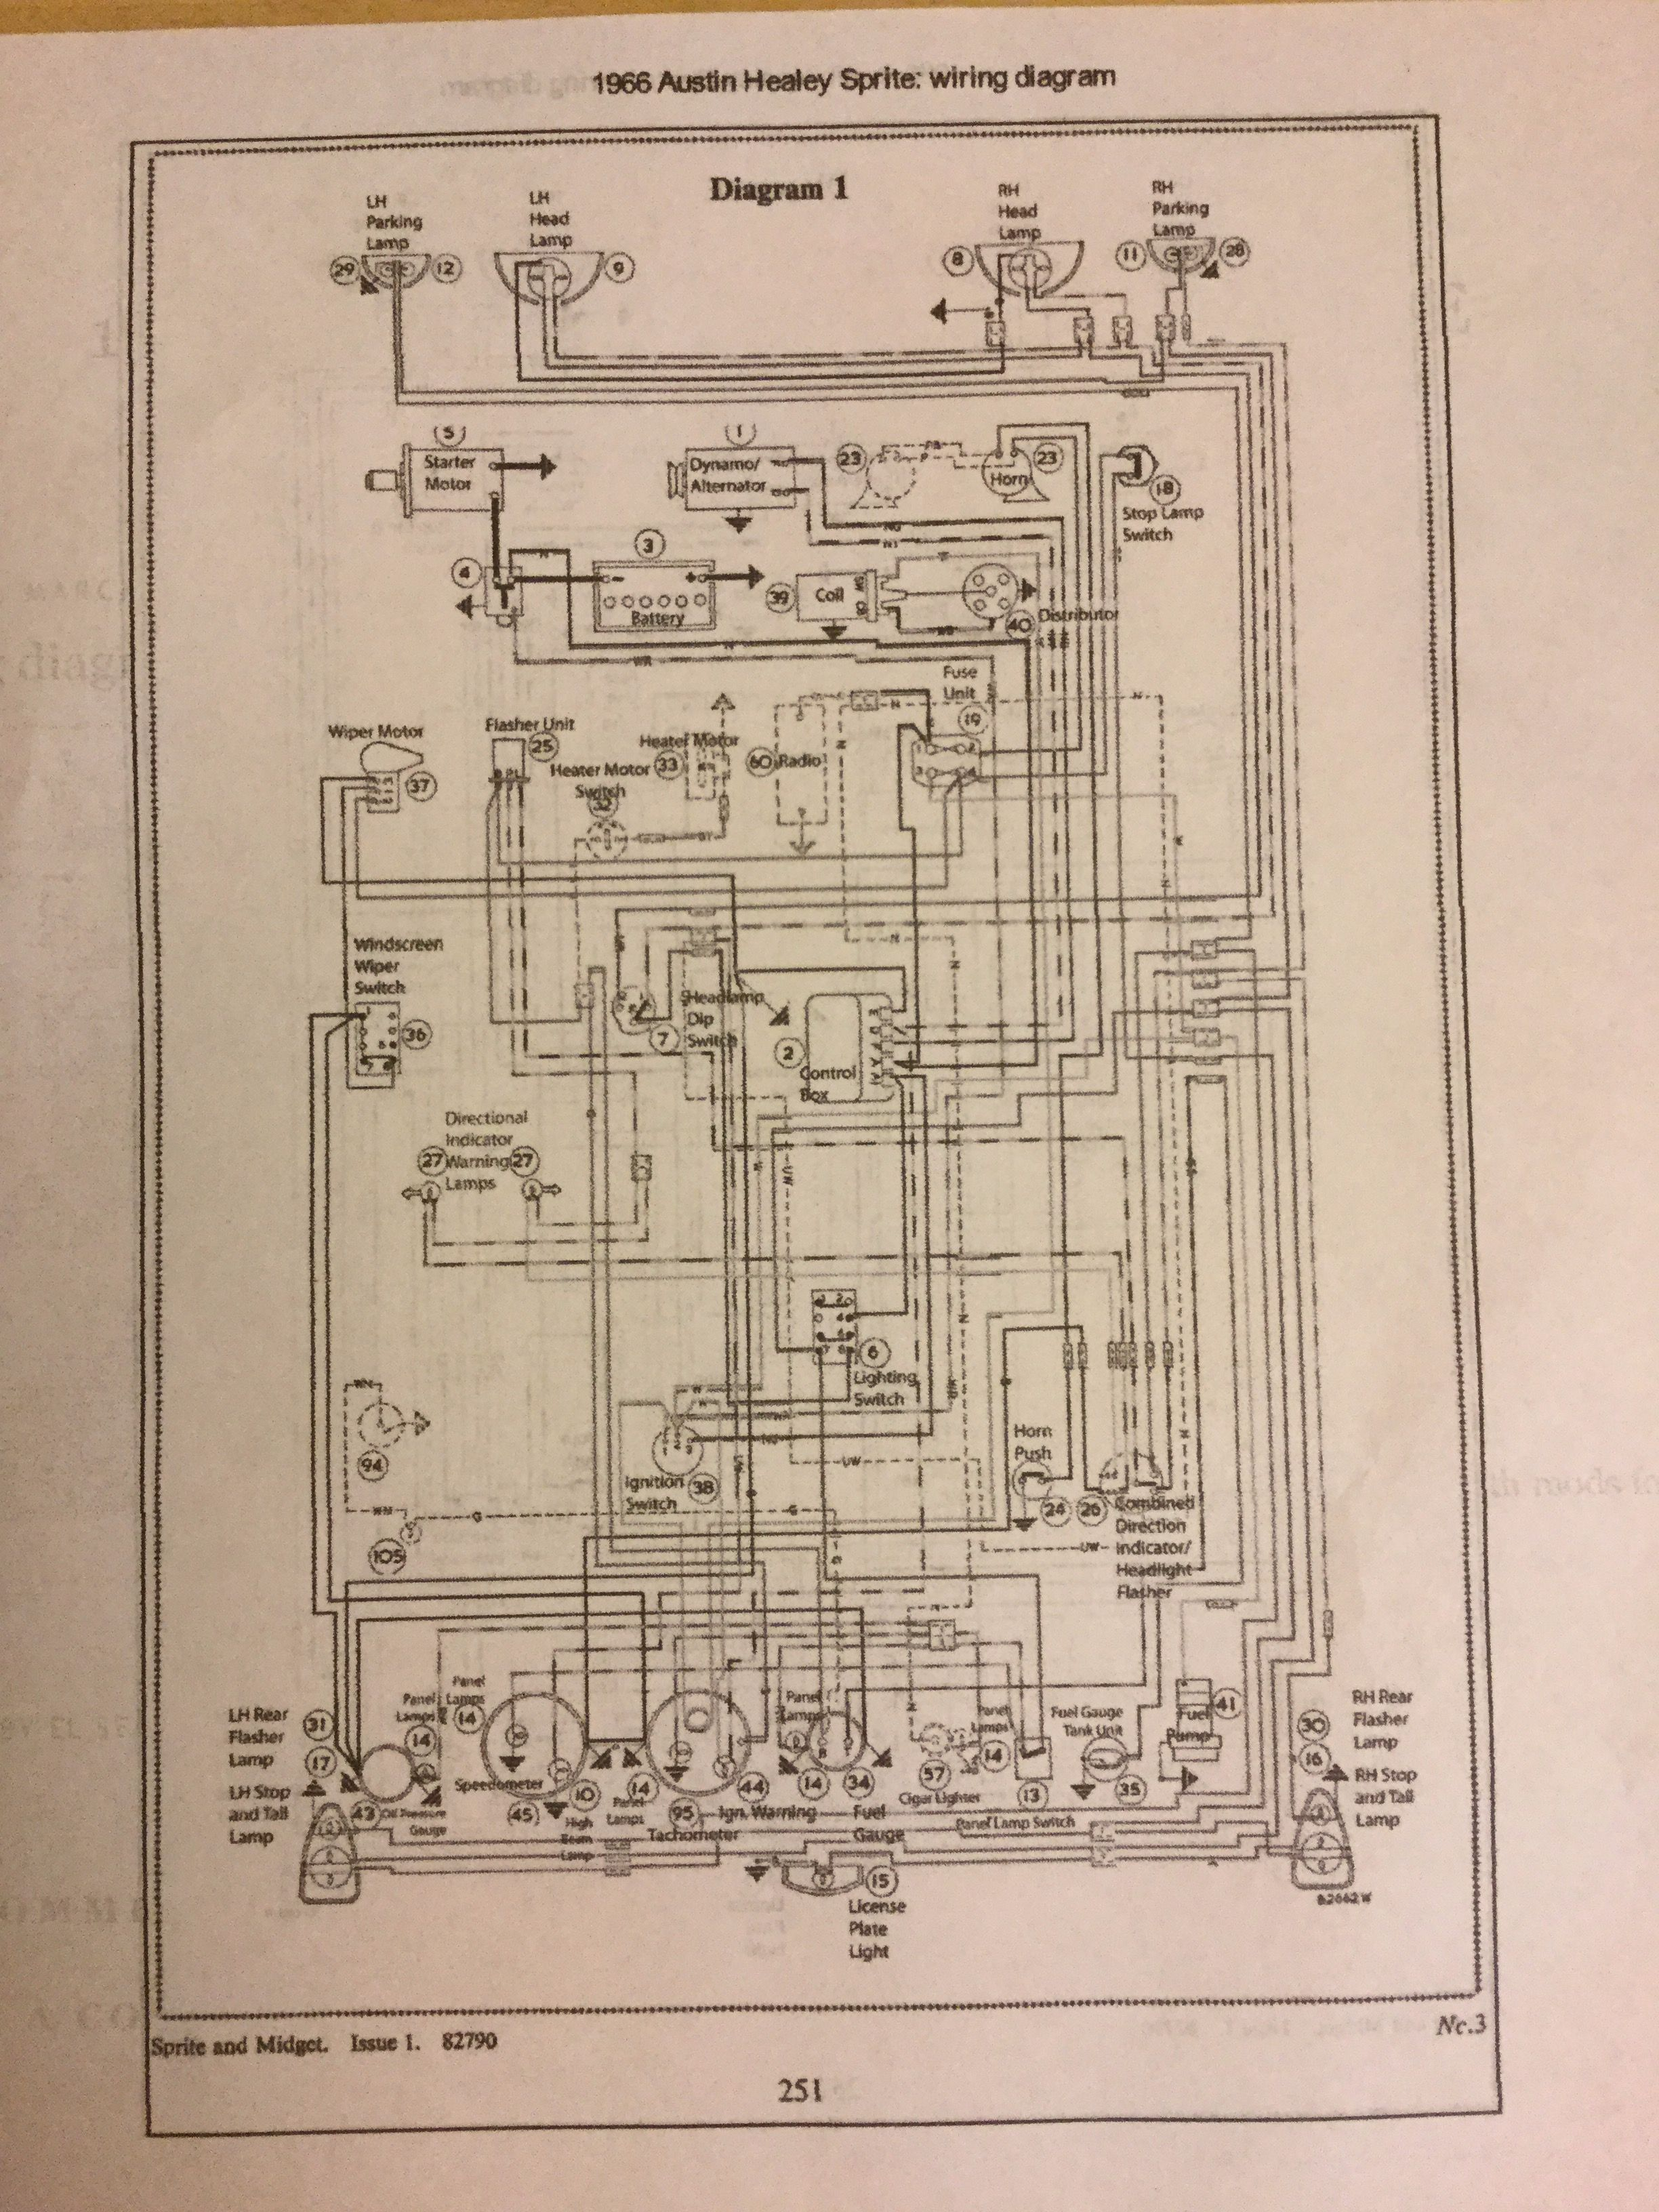 austin healey bugeye sprite wiring diagram simple wiring schema wiring house home austin healey fuel gauge wiring diagram [ 2448 x 3264 Pixel ]